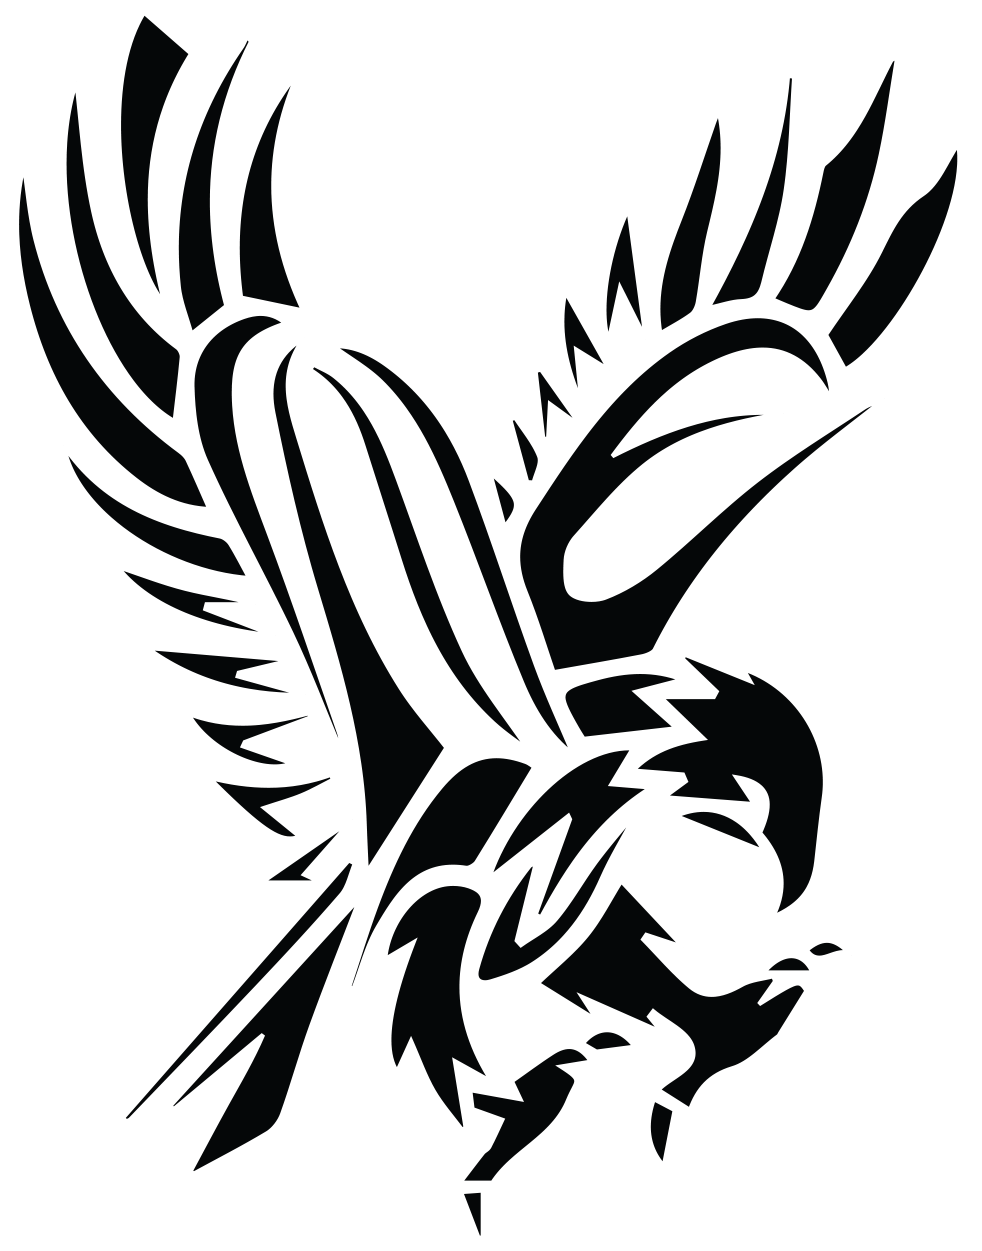 Black Tribal Flying Hawk Tattoo Stencil More - Hawk PNG Black And White